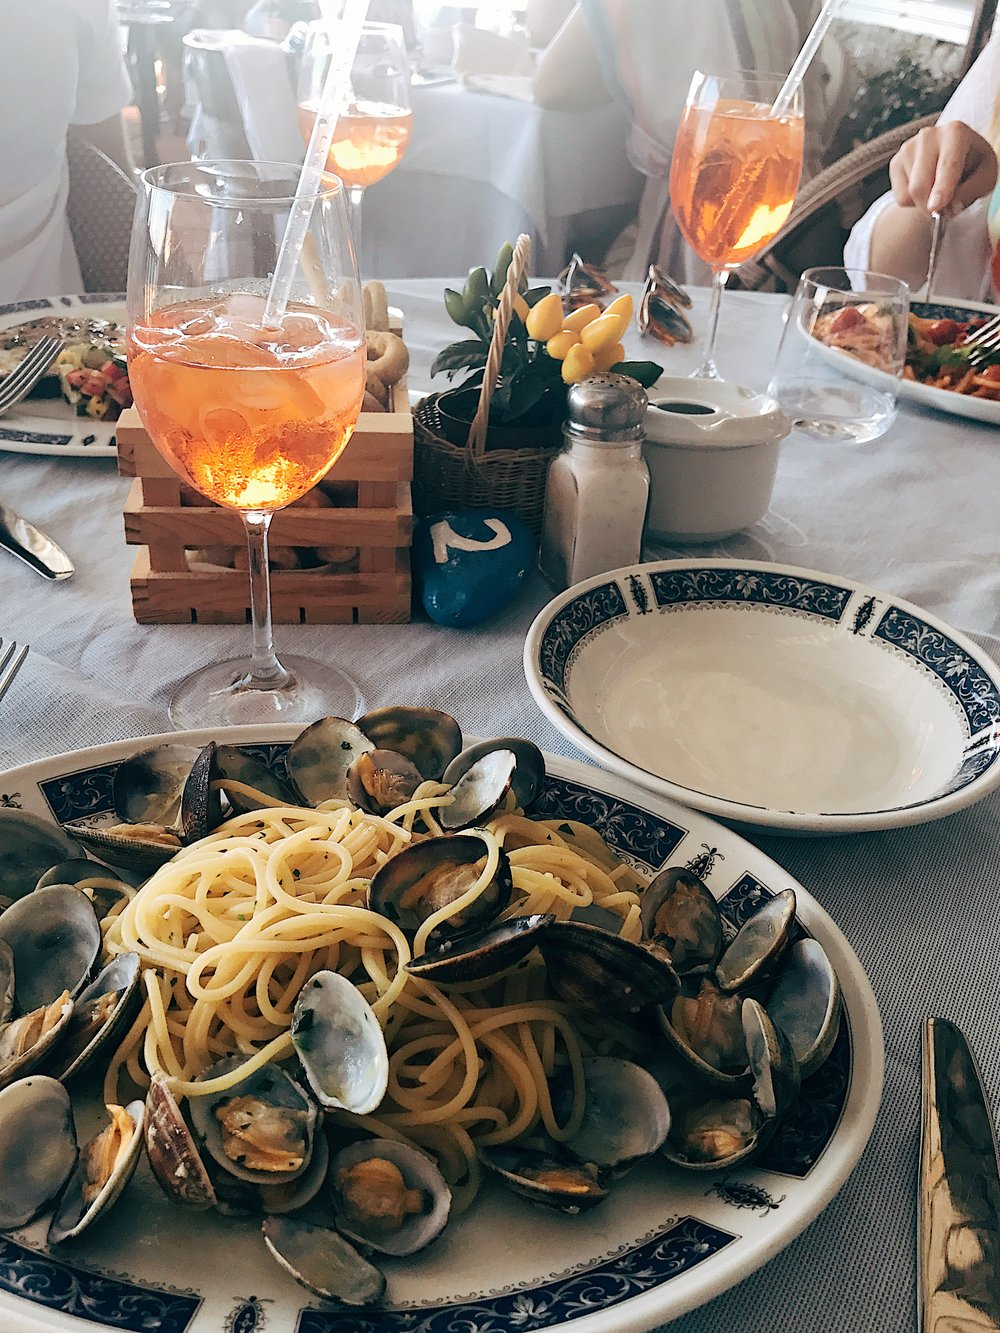 Linguine Vognole and endless Aperol Spritz at Ristorante  La Cazone del Mare .